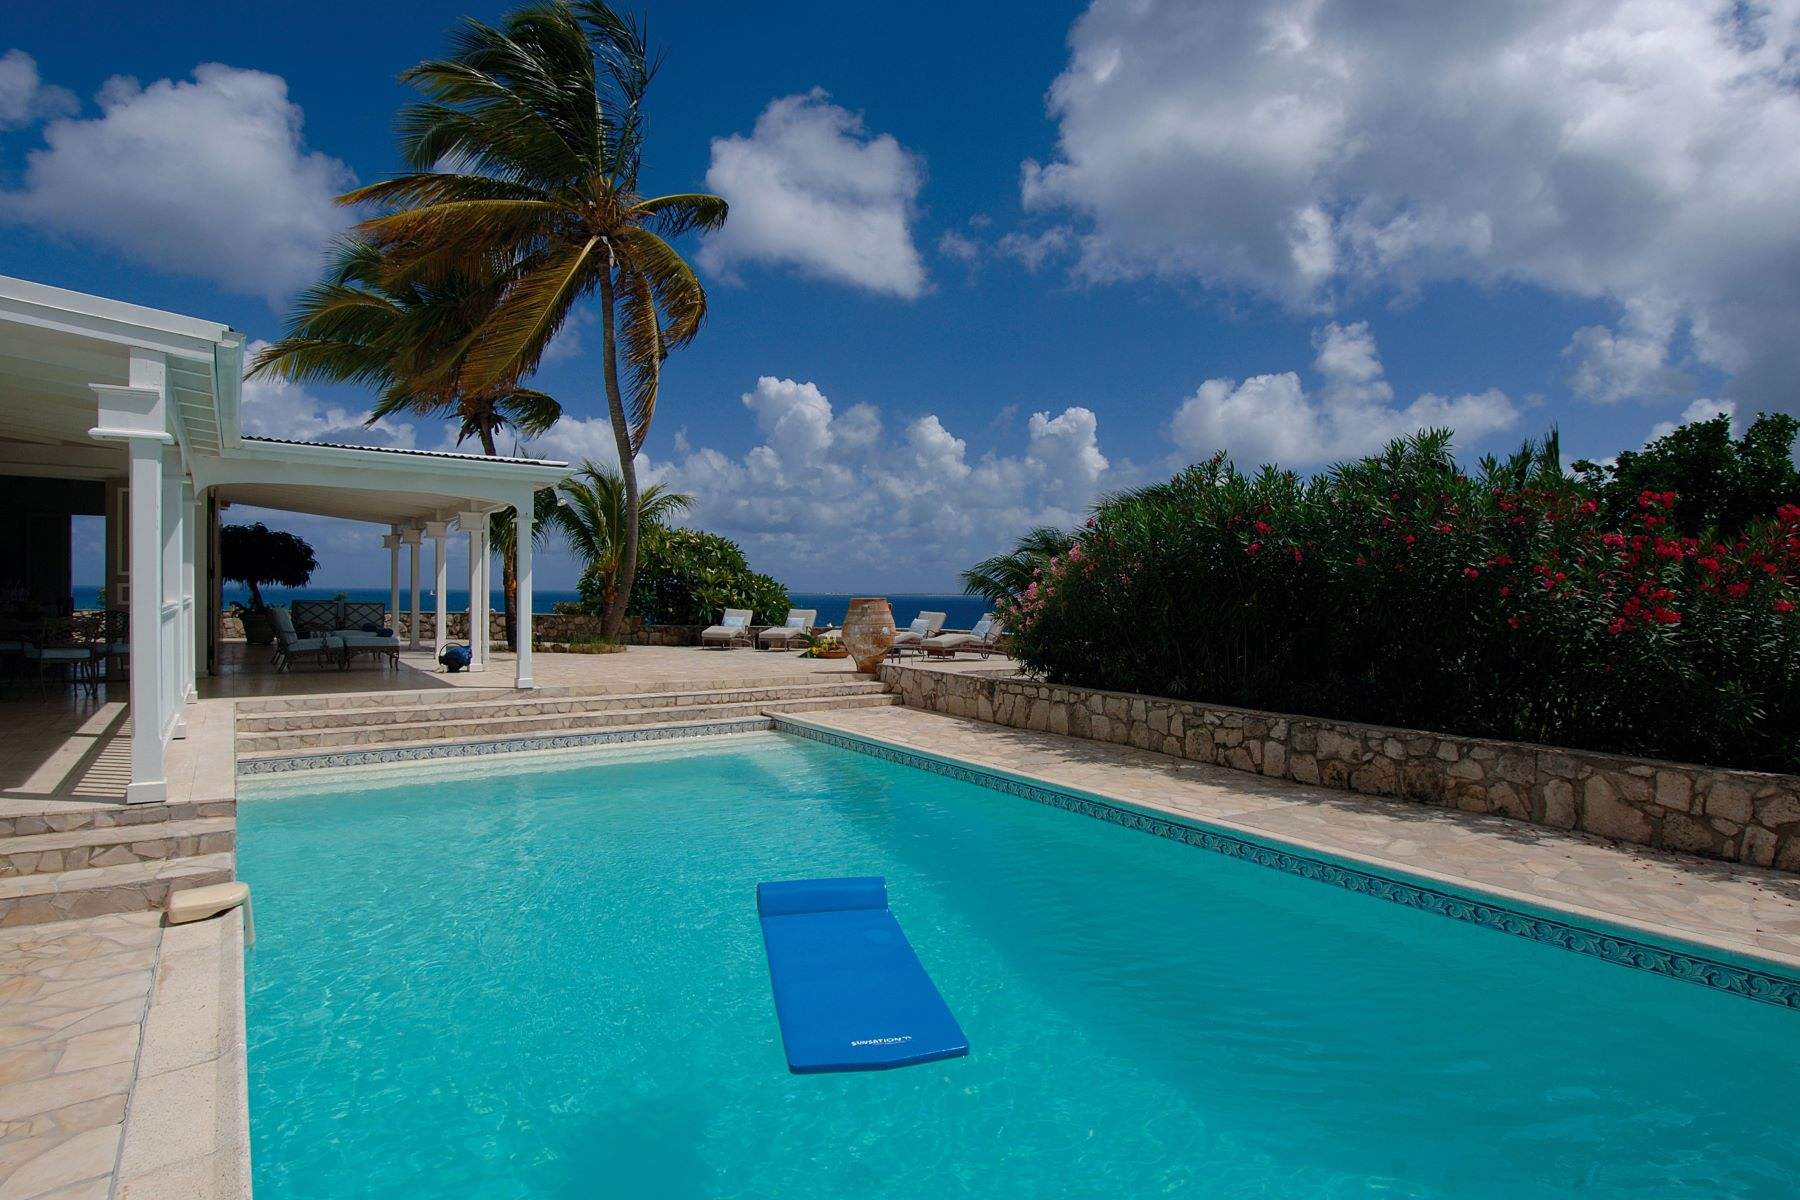 Single Family Home for Rent at Le Caprice Le Caprice Baie Rouge Terres Basses, 97150 St. Martin